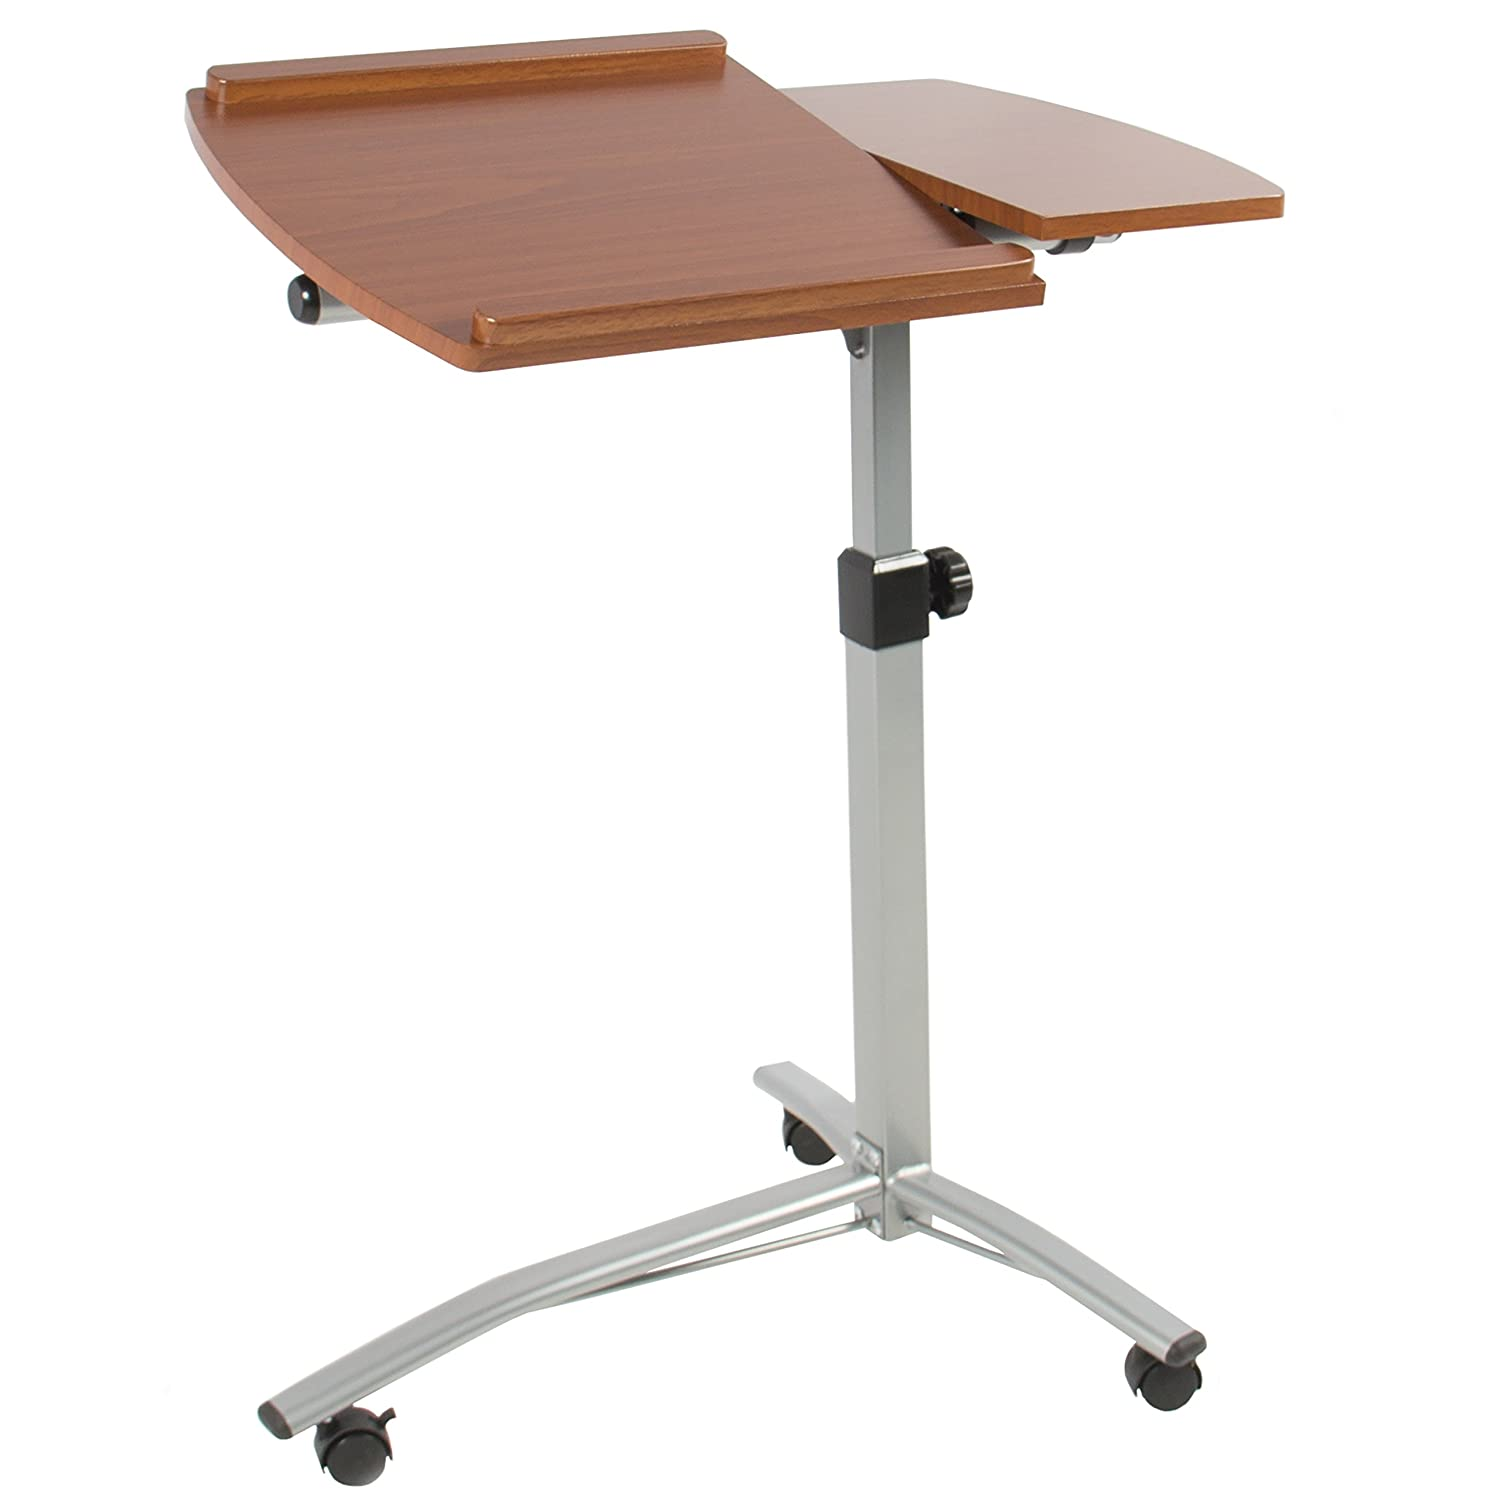 cart bed table adjustable dp angle stand office choice height com hospital amazon best desk products laptop rolling over